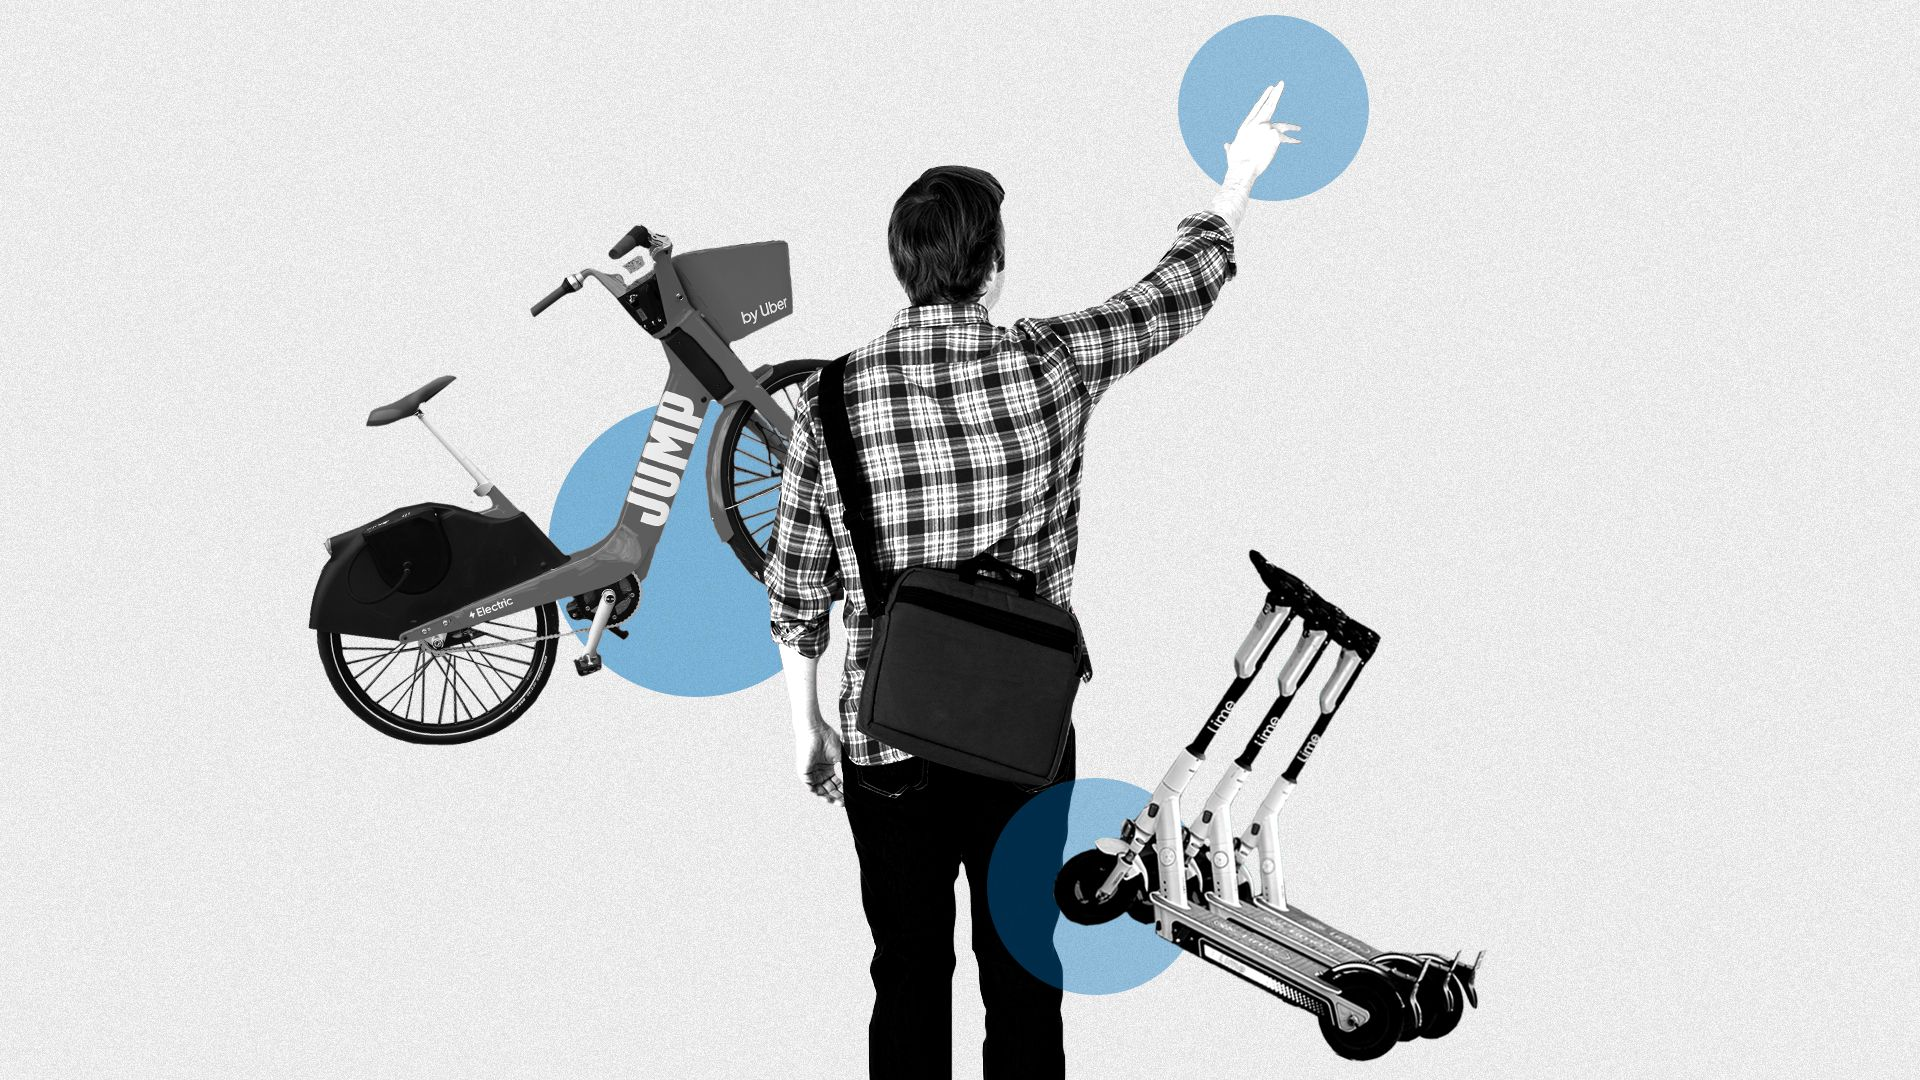 Illustrated collage of a man hailing a cab, a share bike and an e-scooter